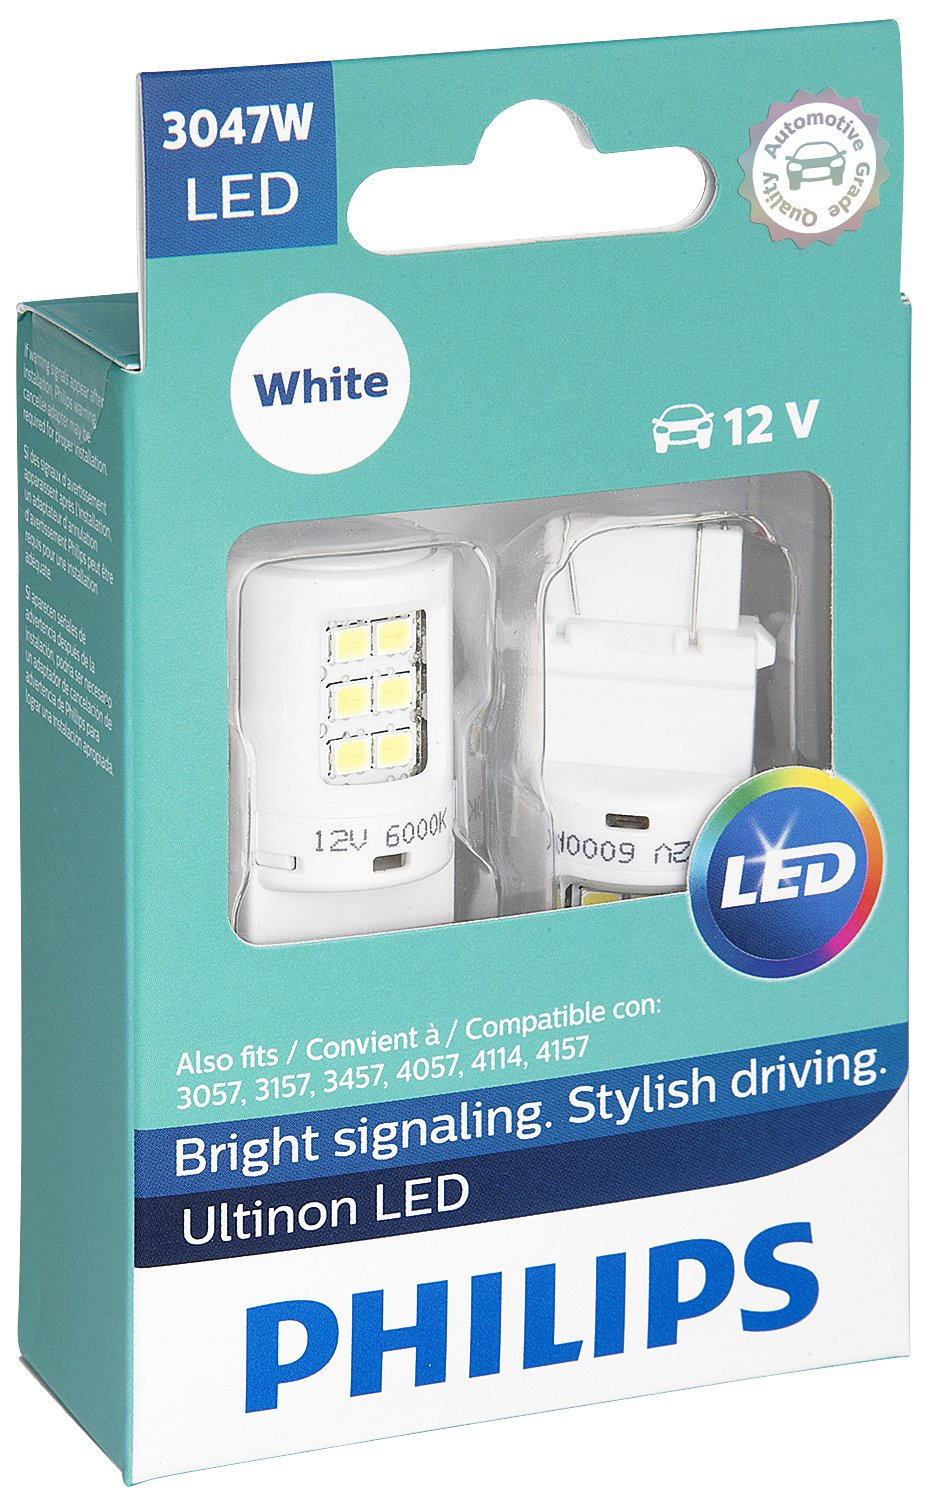 2 Pack White Philips 3047 Ultinon LED Bulb